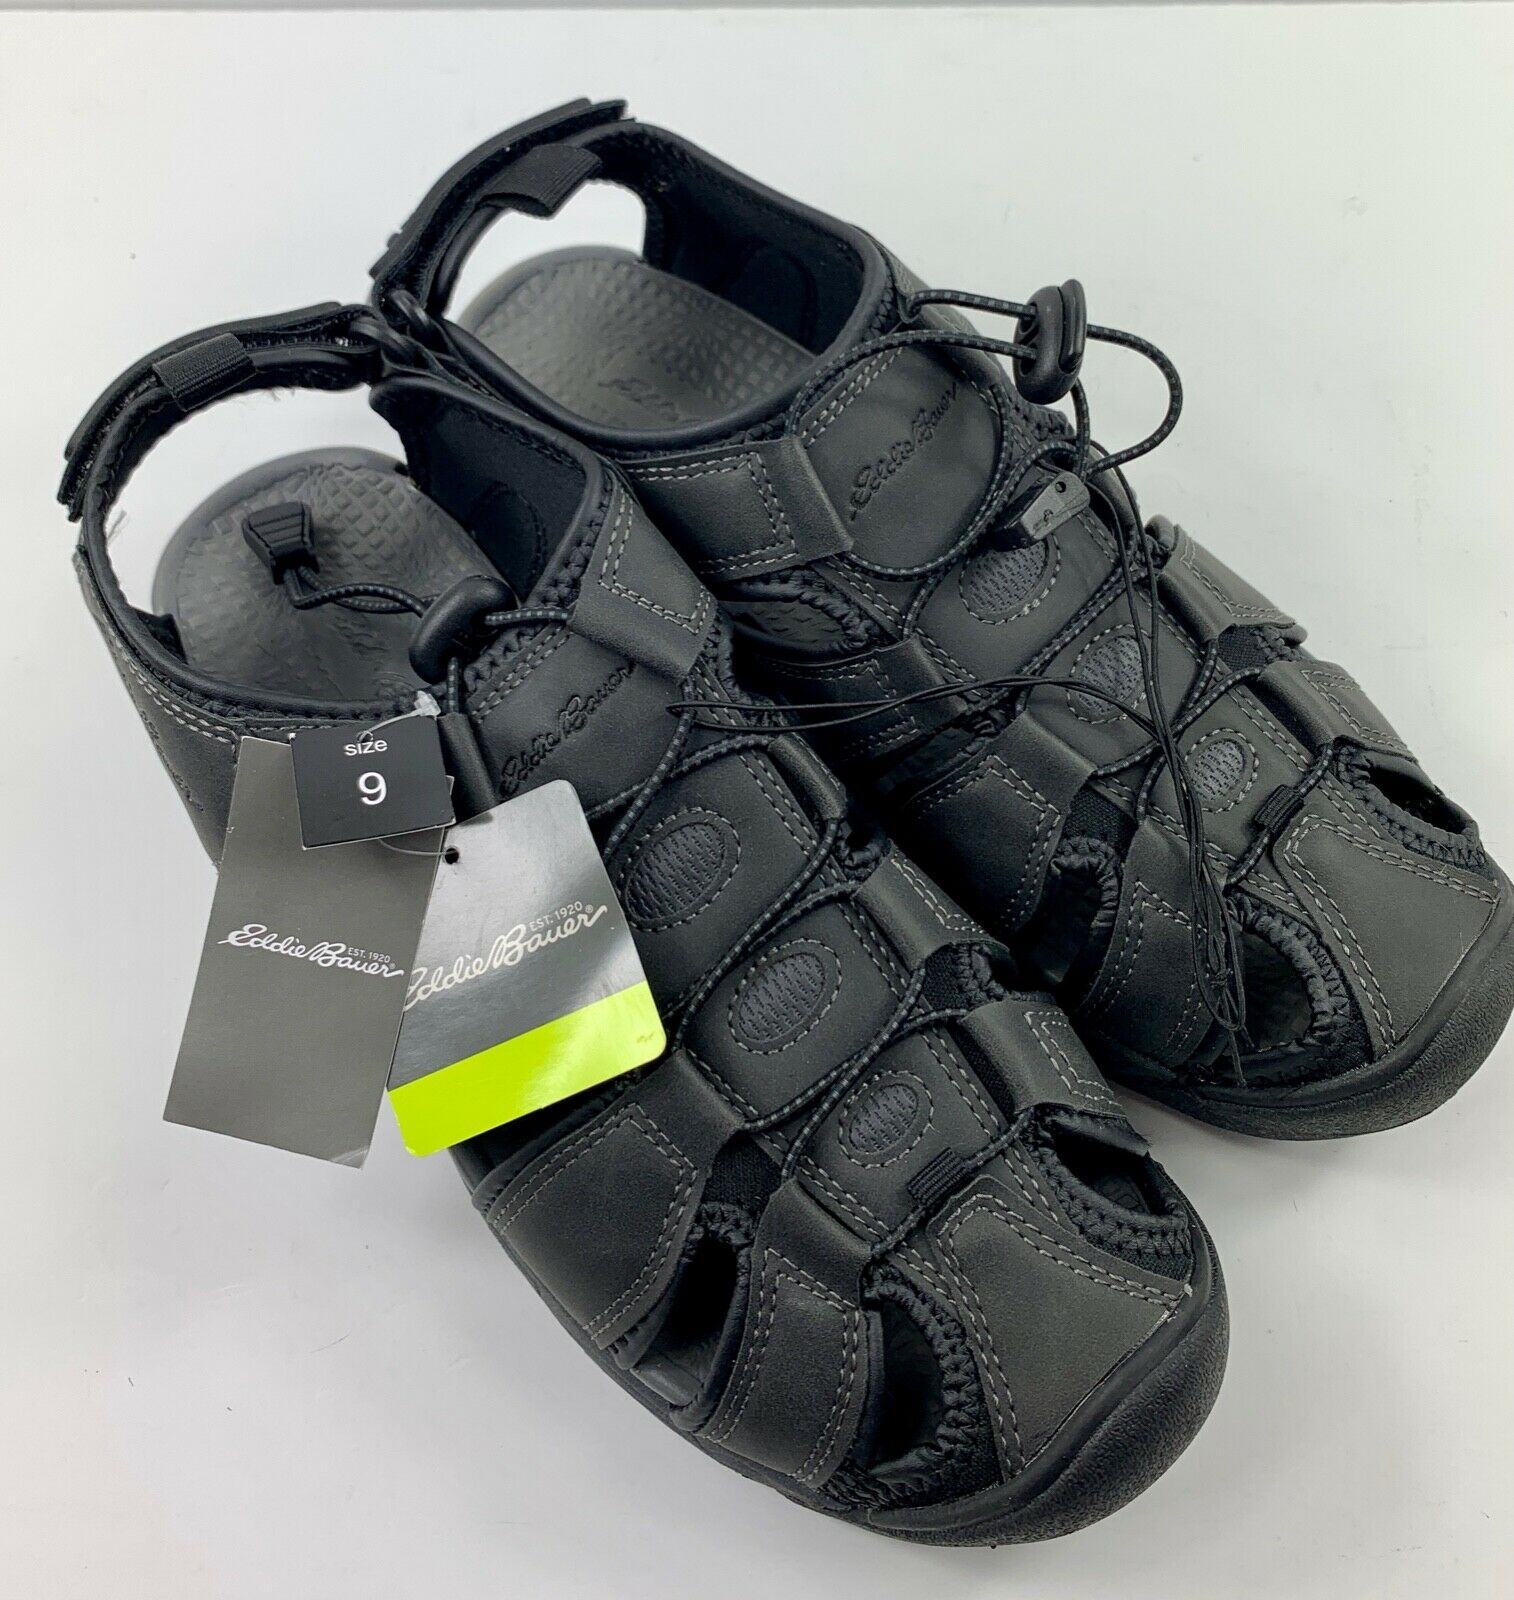 New Eddie Bauer Men's Size 9 Water Hiking Shoes Leather Sandals Black